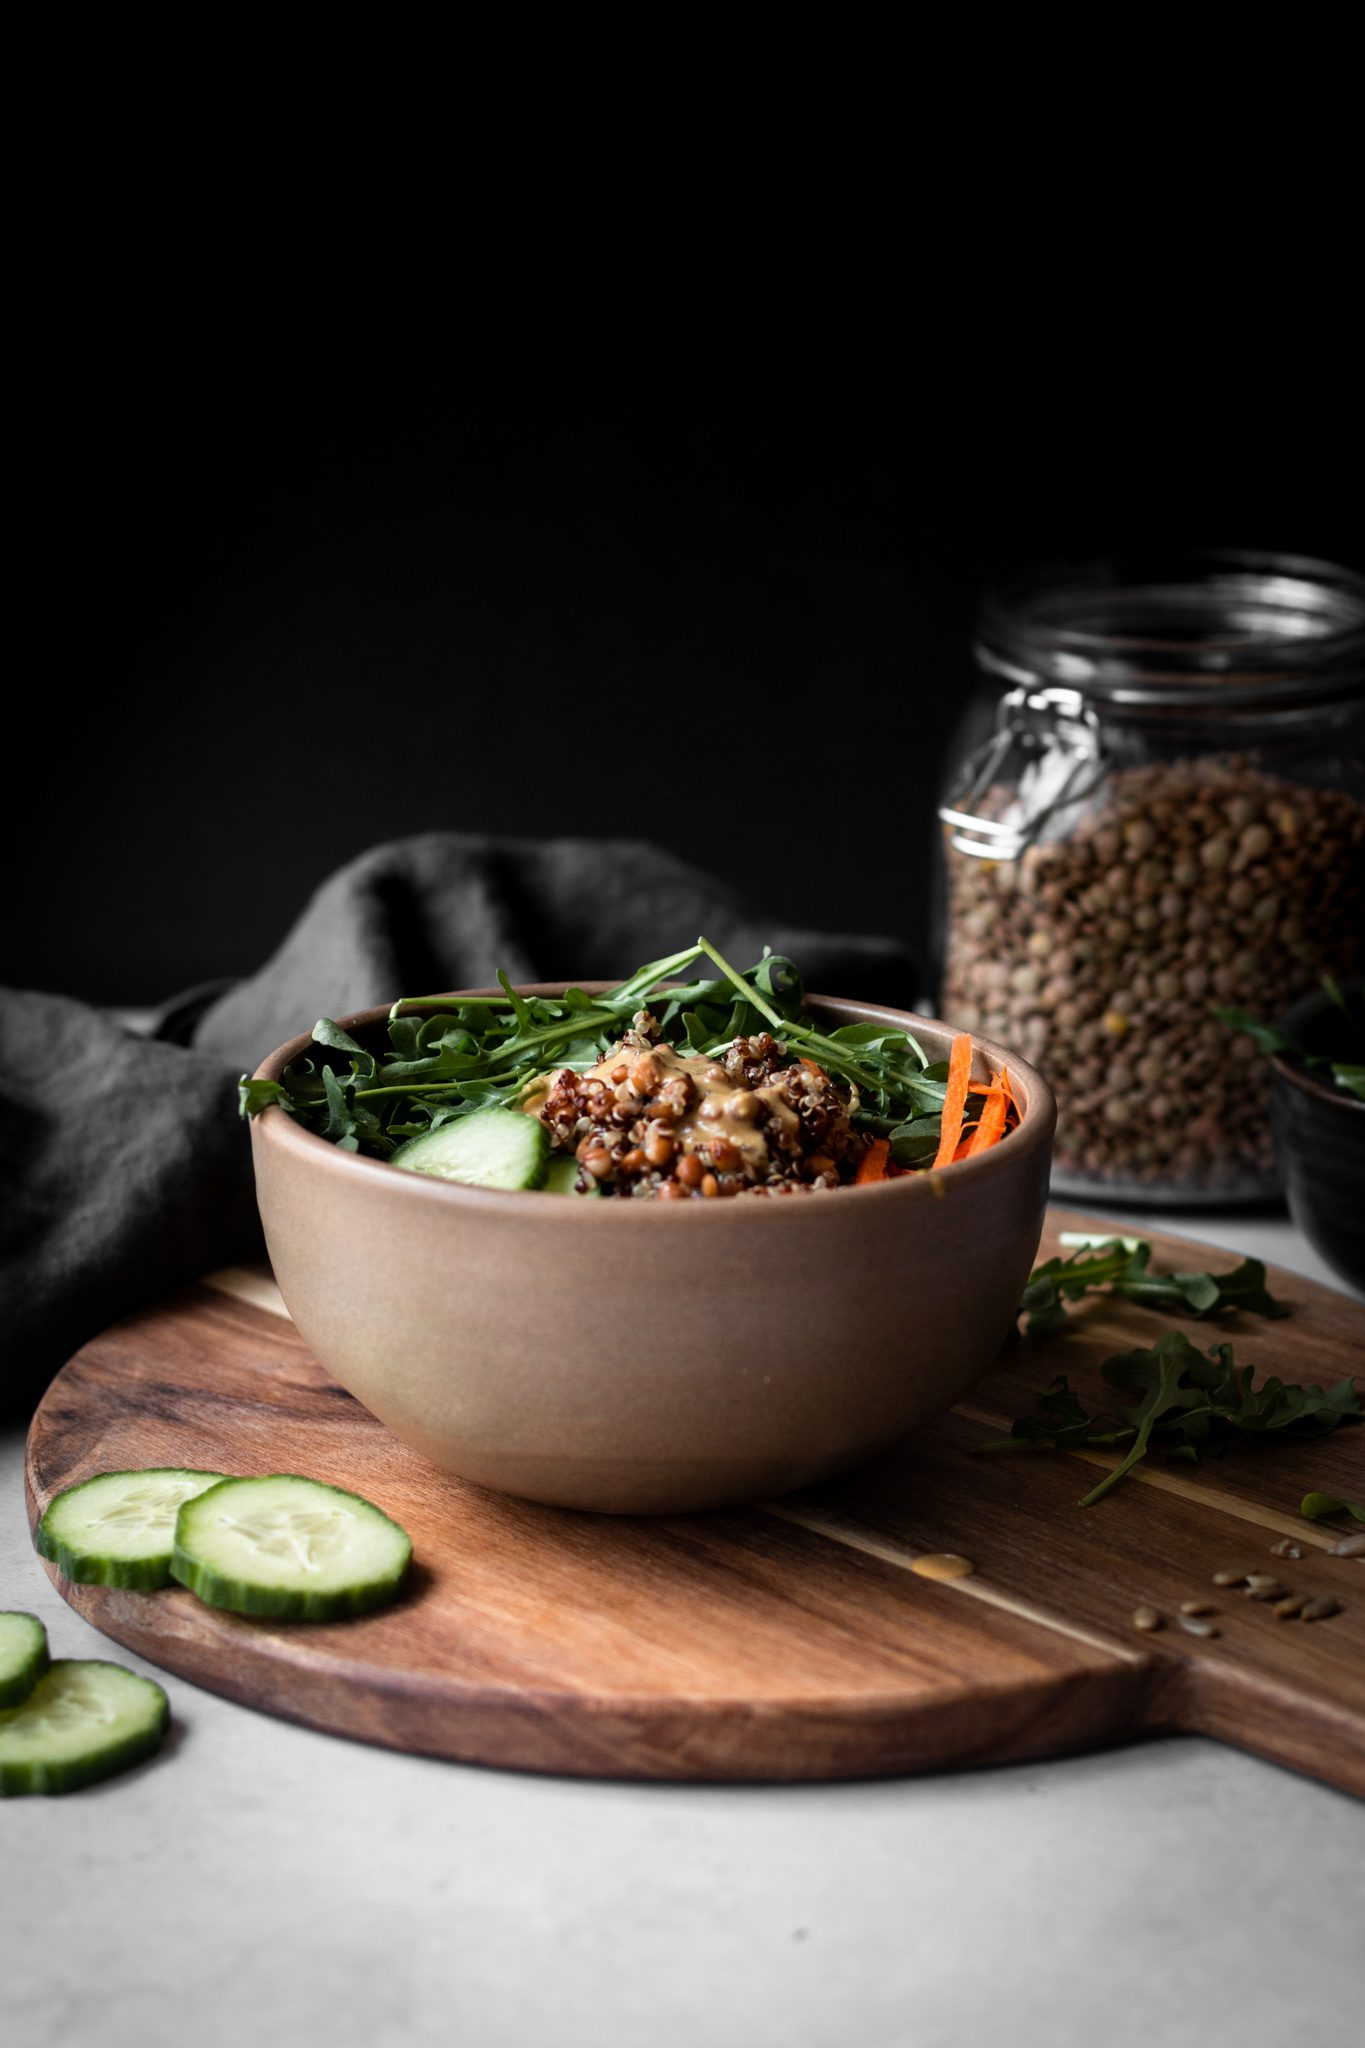 lentil quinoa salad in a bowl from the side